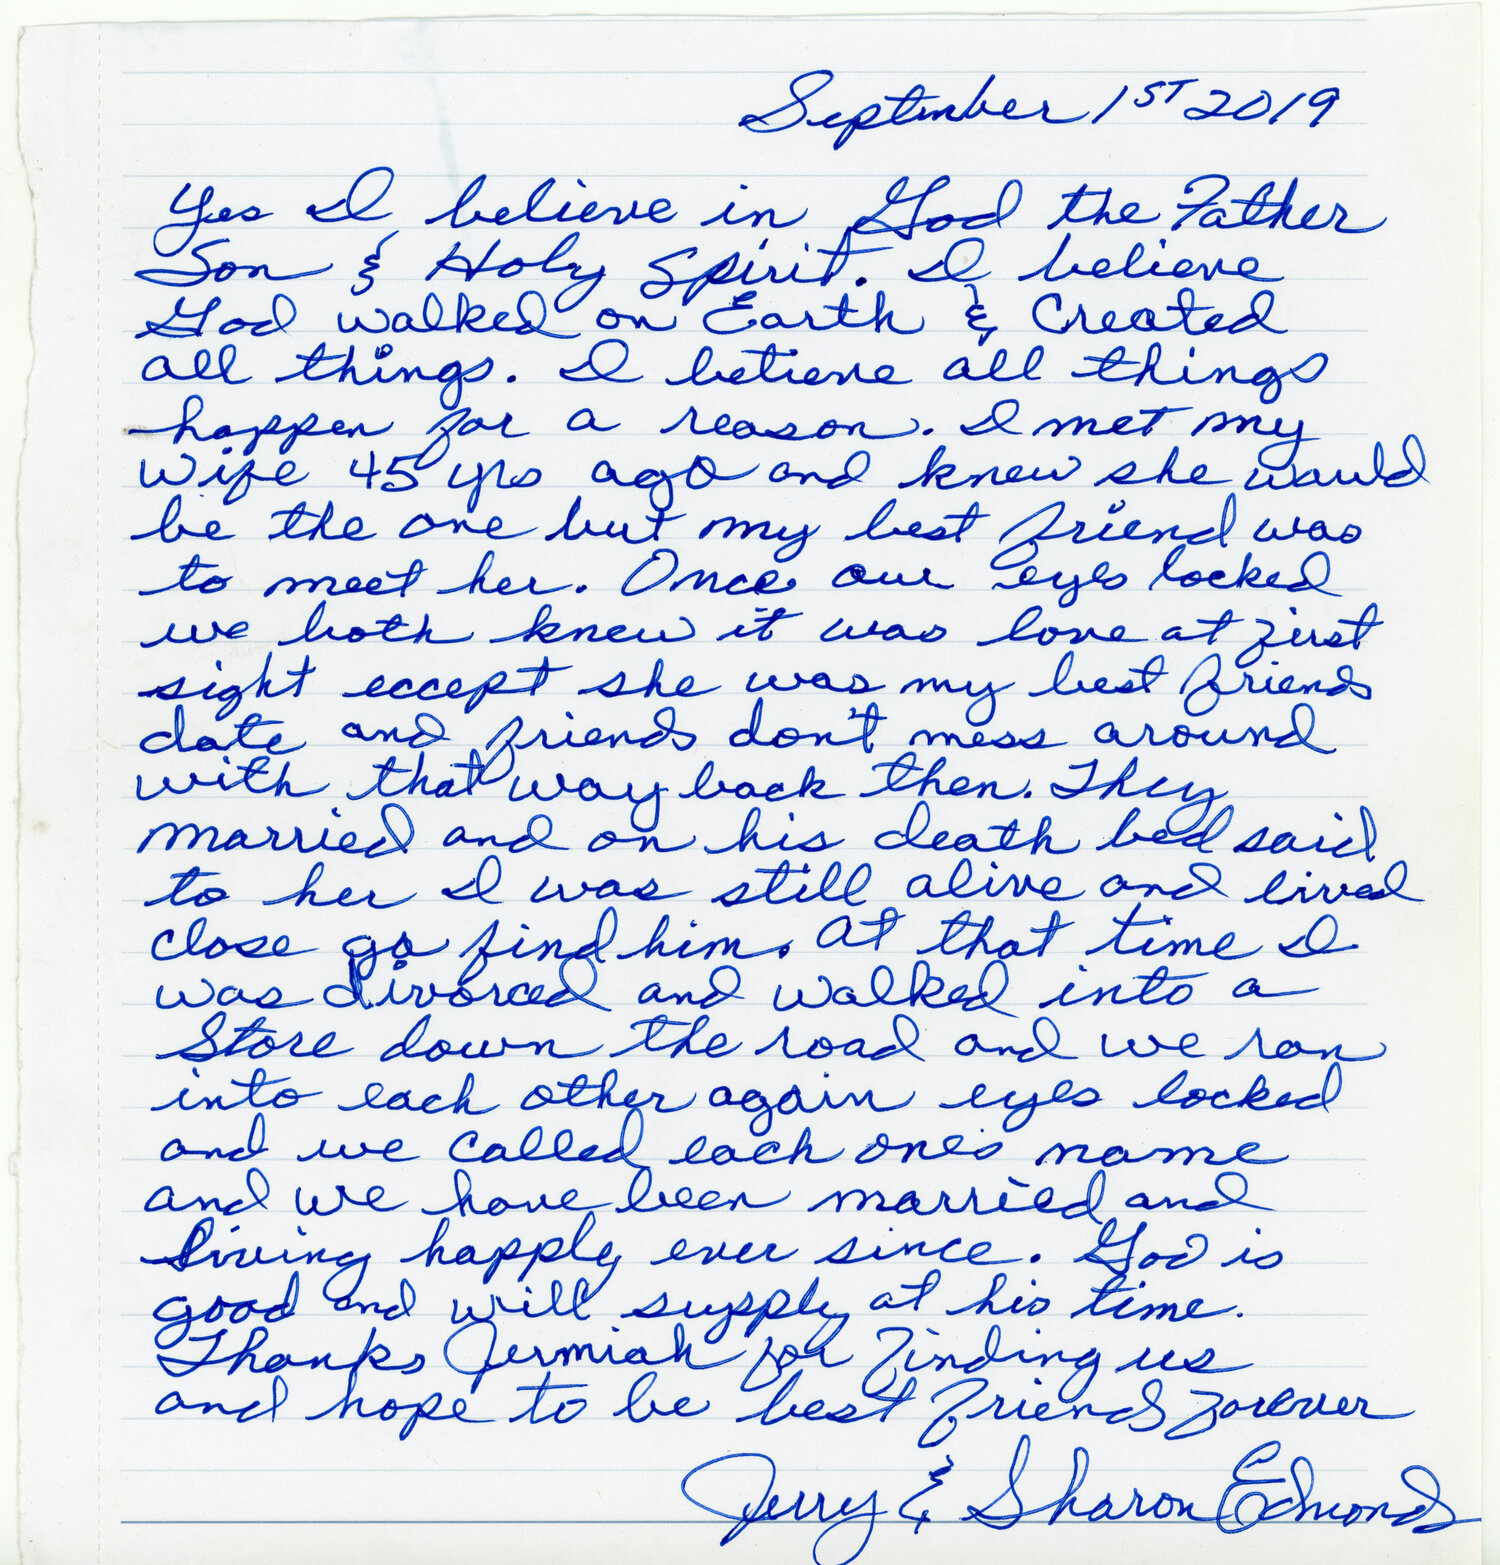 Jerry & Sharons Letter